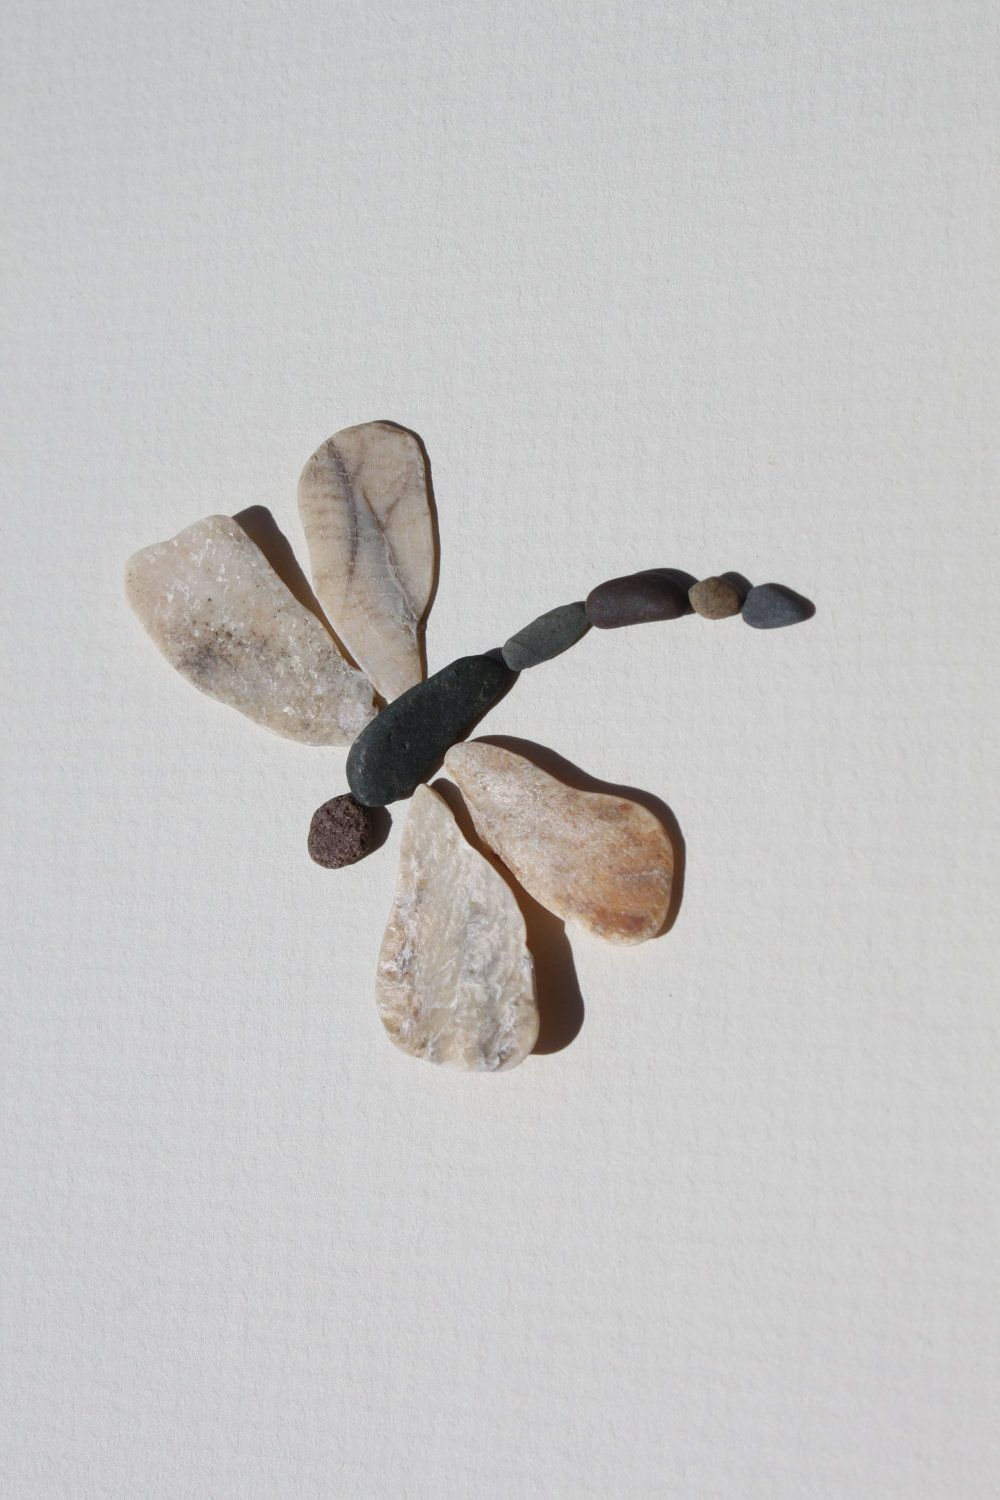 Pebble art of ns by sharon nowlan stones and crystals for Pebble art ideas